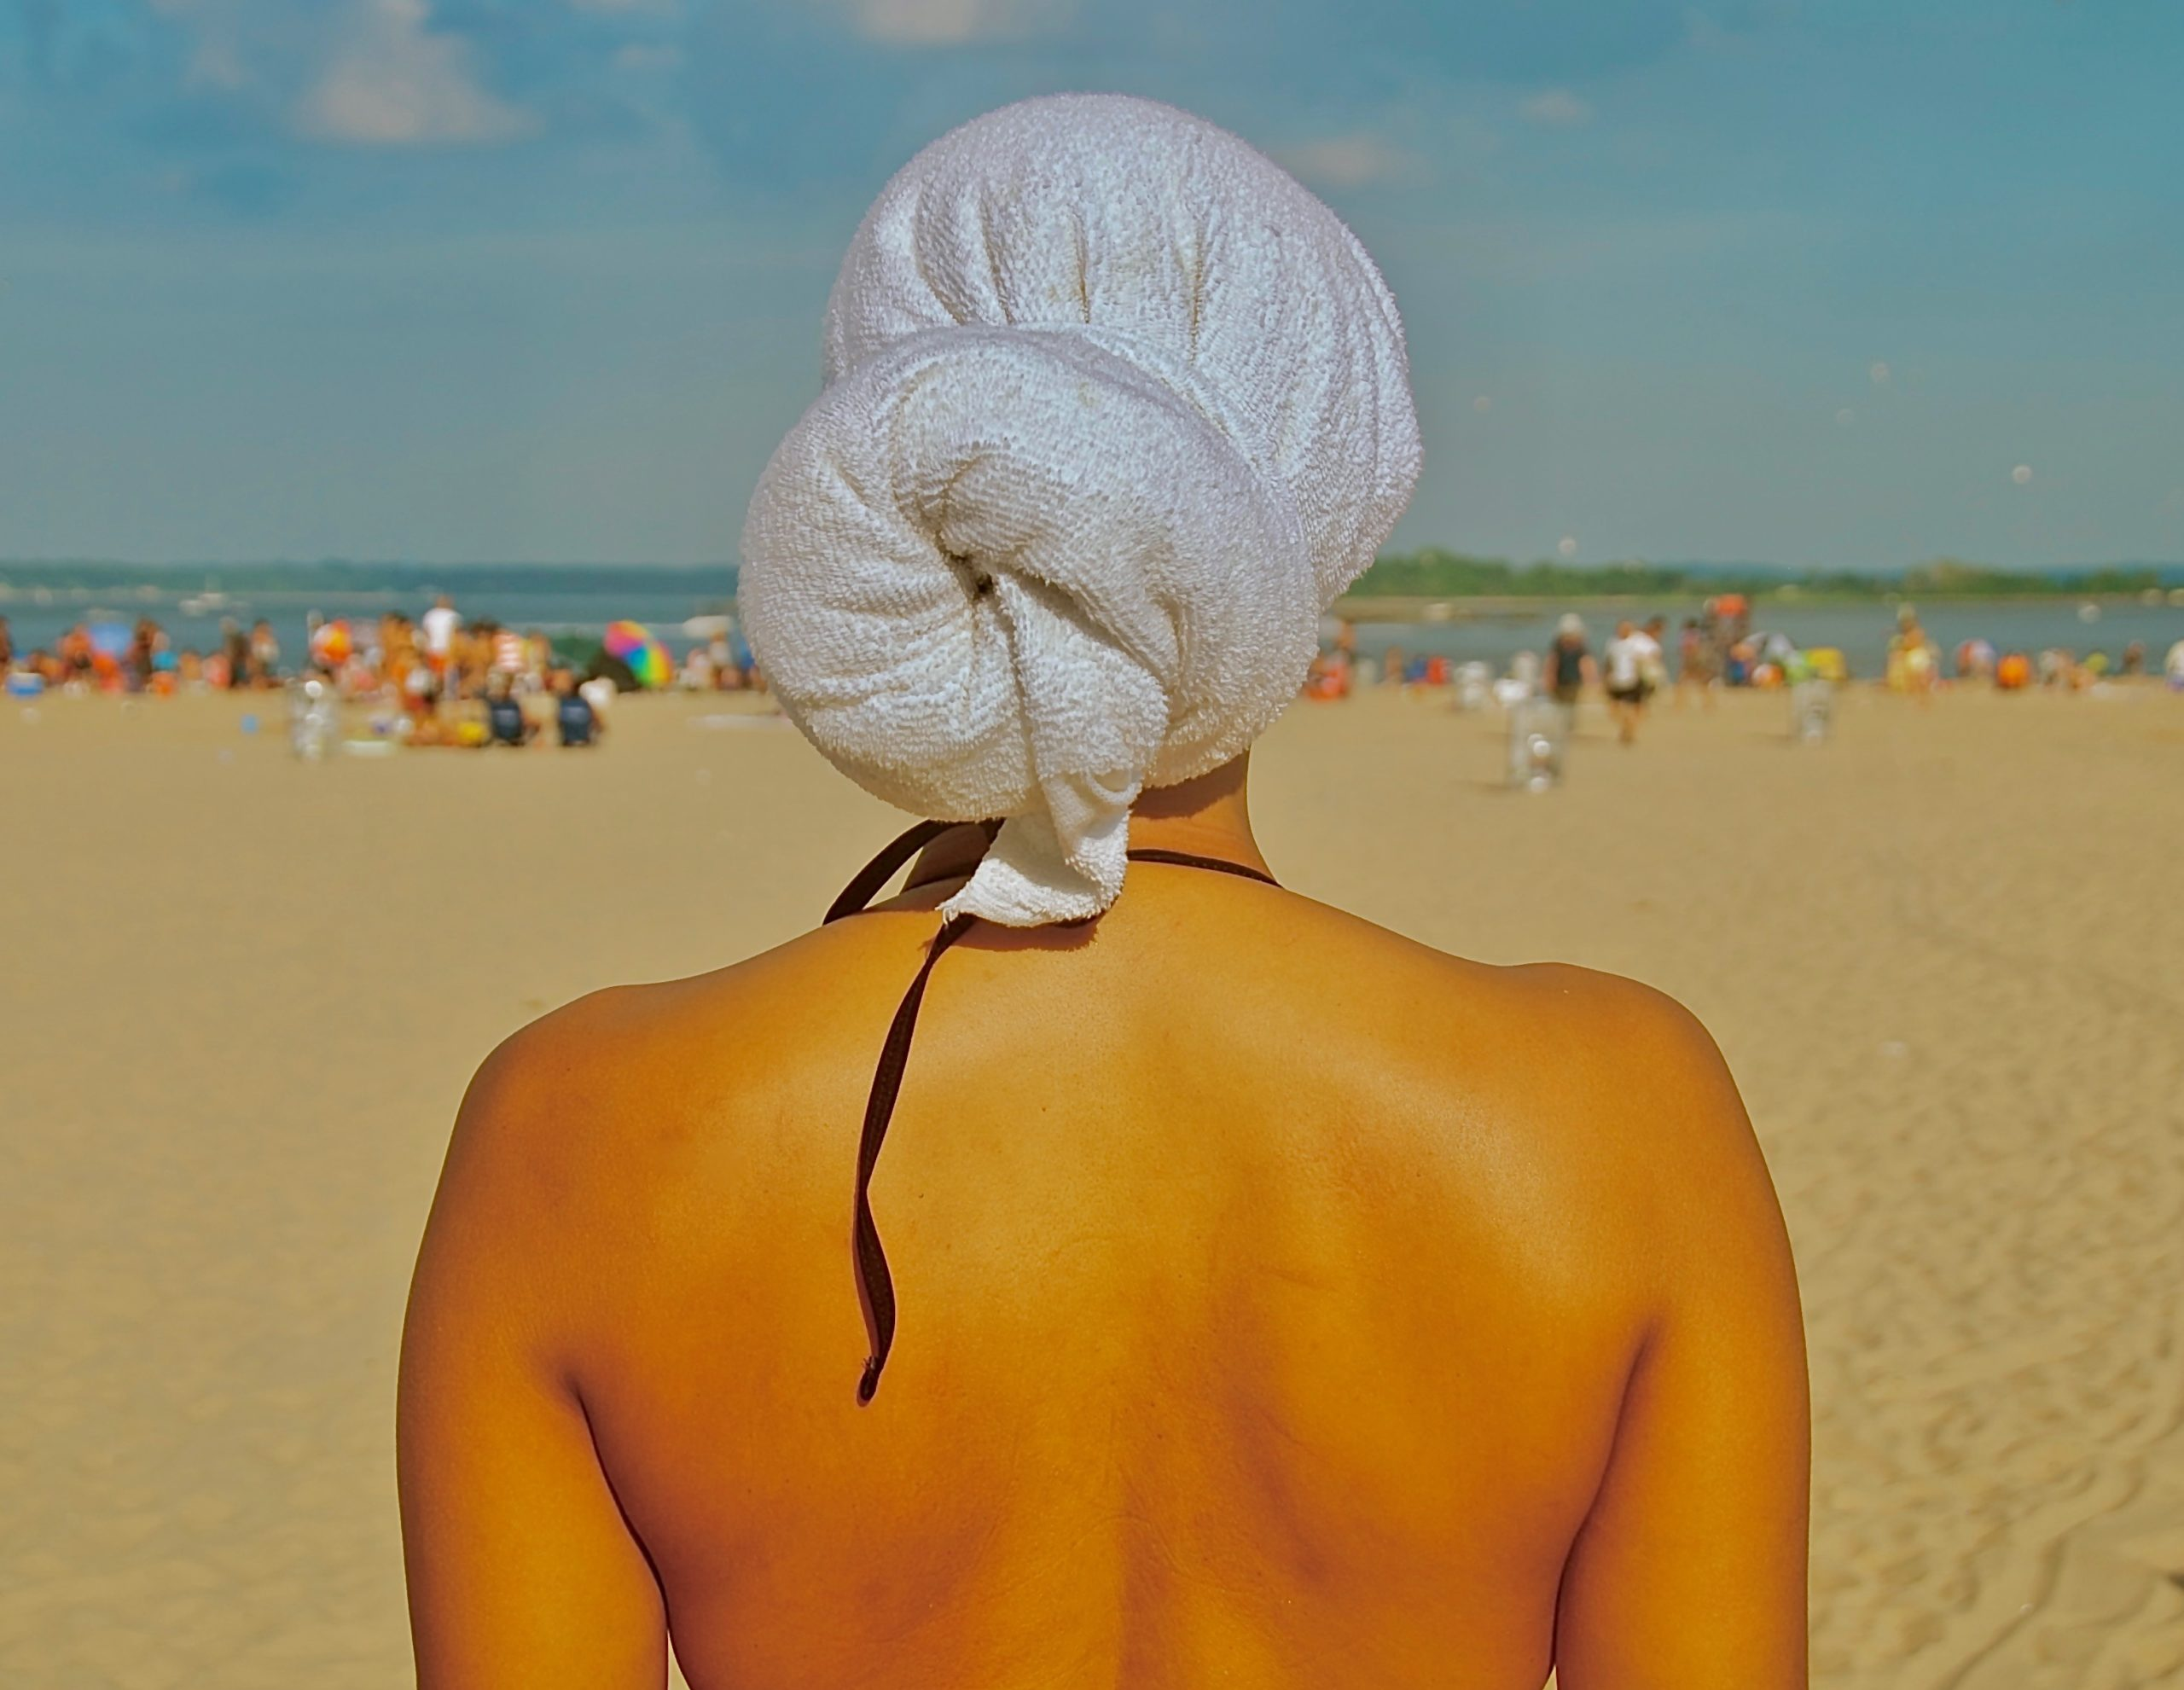 Towel Head Wrap (Old School Style) 2012, Orchard Beach, The Bronx, NYC. June 9, 2012, 3:45 PM (85 degrees). © Ruben Natal-San Miguel. Courtesy of Ruben Natal-San Miguel & Postmasters Gallery.